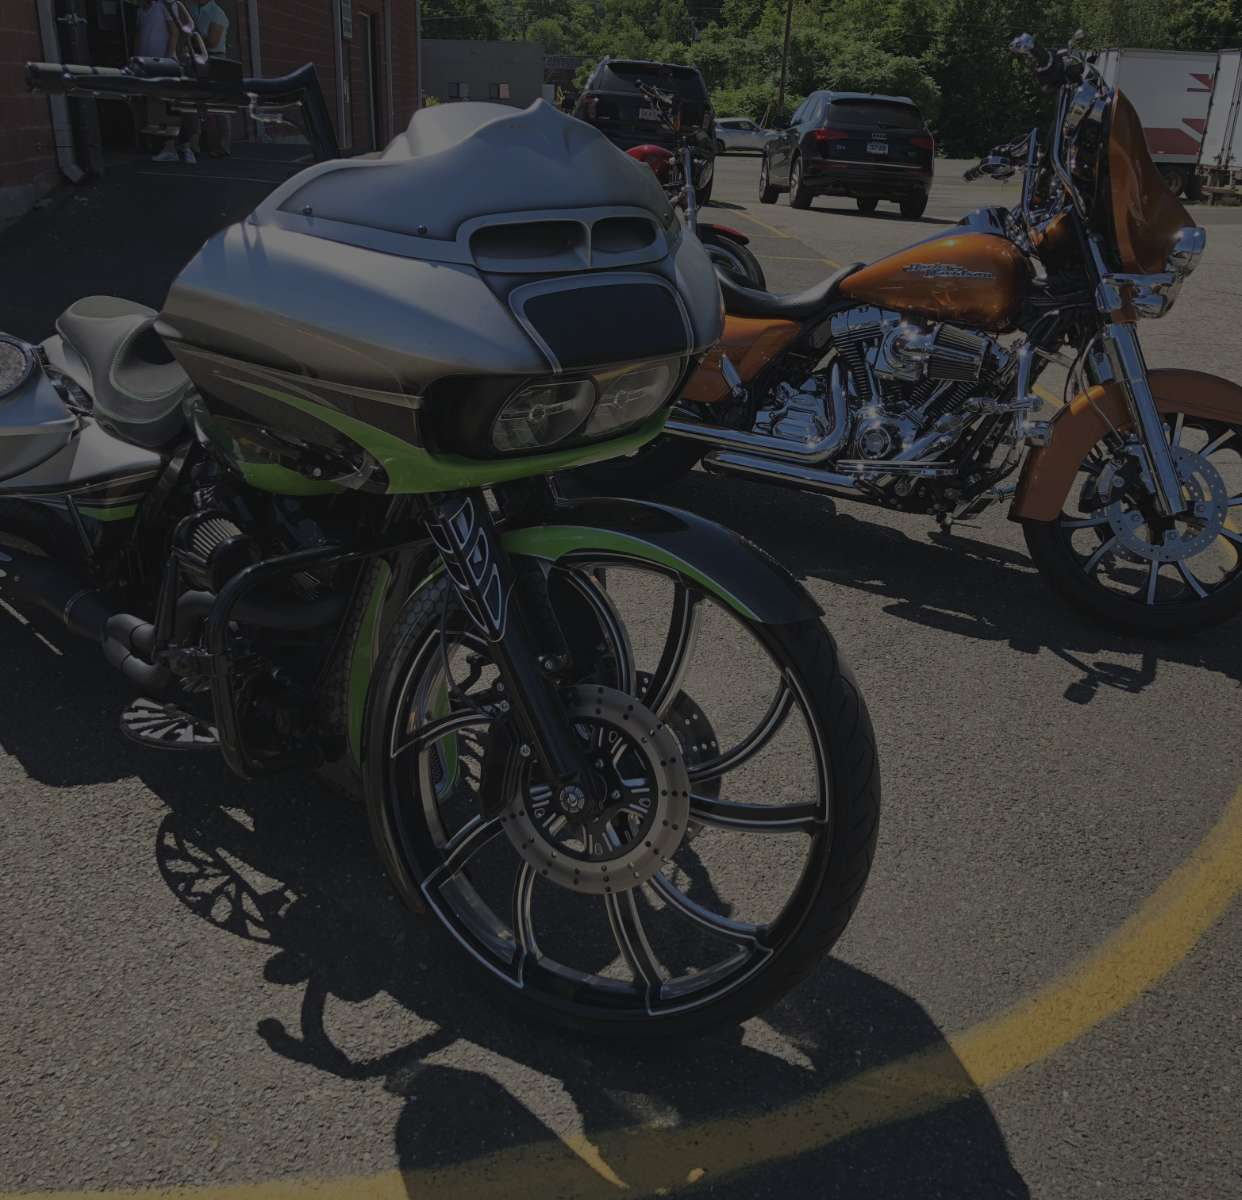 Home Doc's Motorcycle Parts Waterbury, CT (203) 757-0295